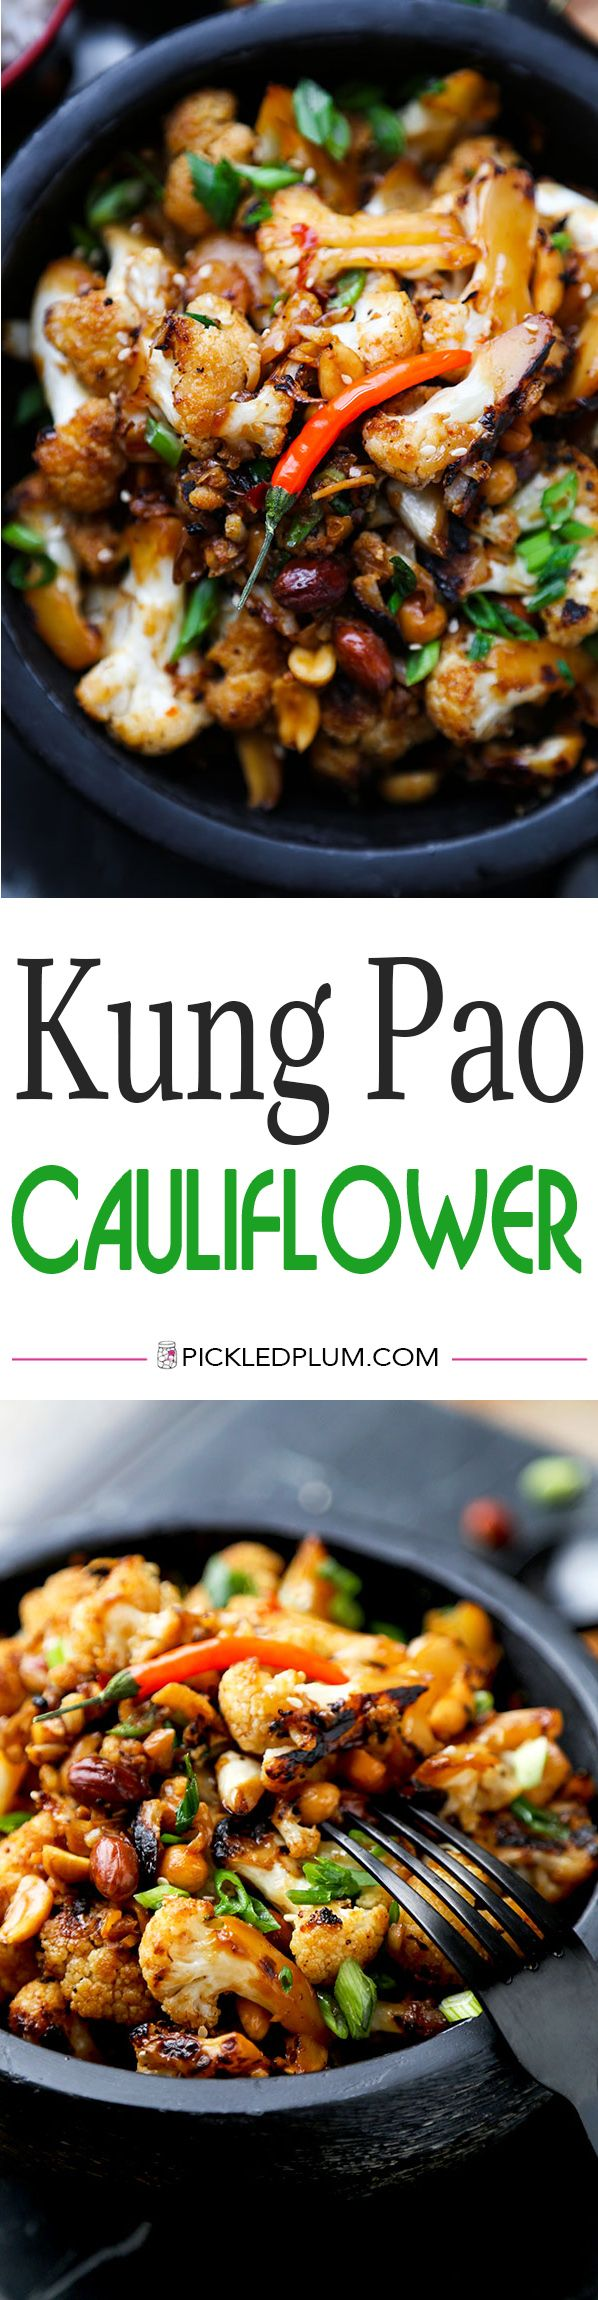 Kung Pao Cauliflower  A Delicious Alternative To Classic Kung Pao Chicken,  Kung Pao Cauliflower Healthy Chinese Foodhealthy